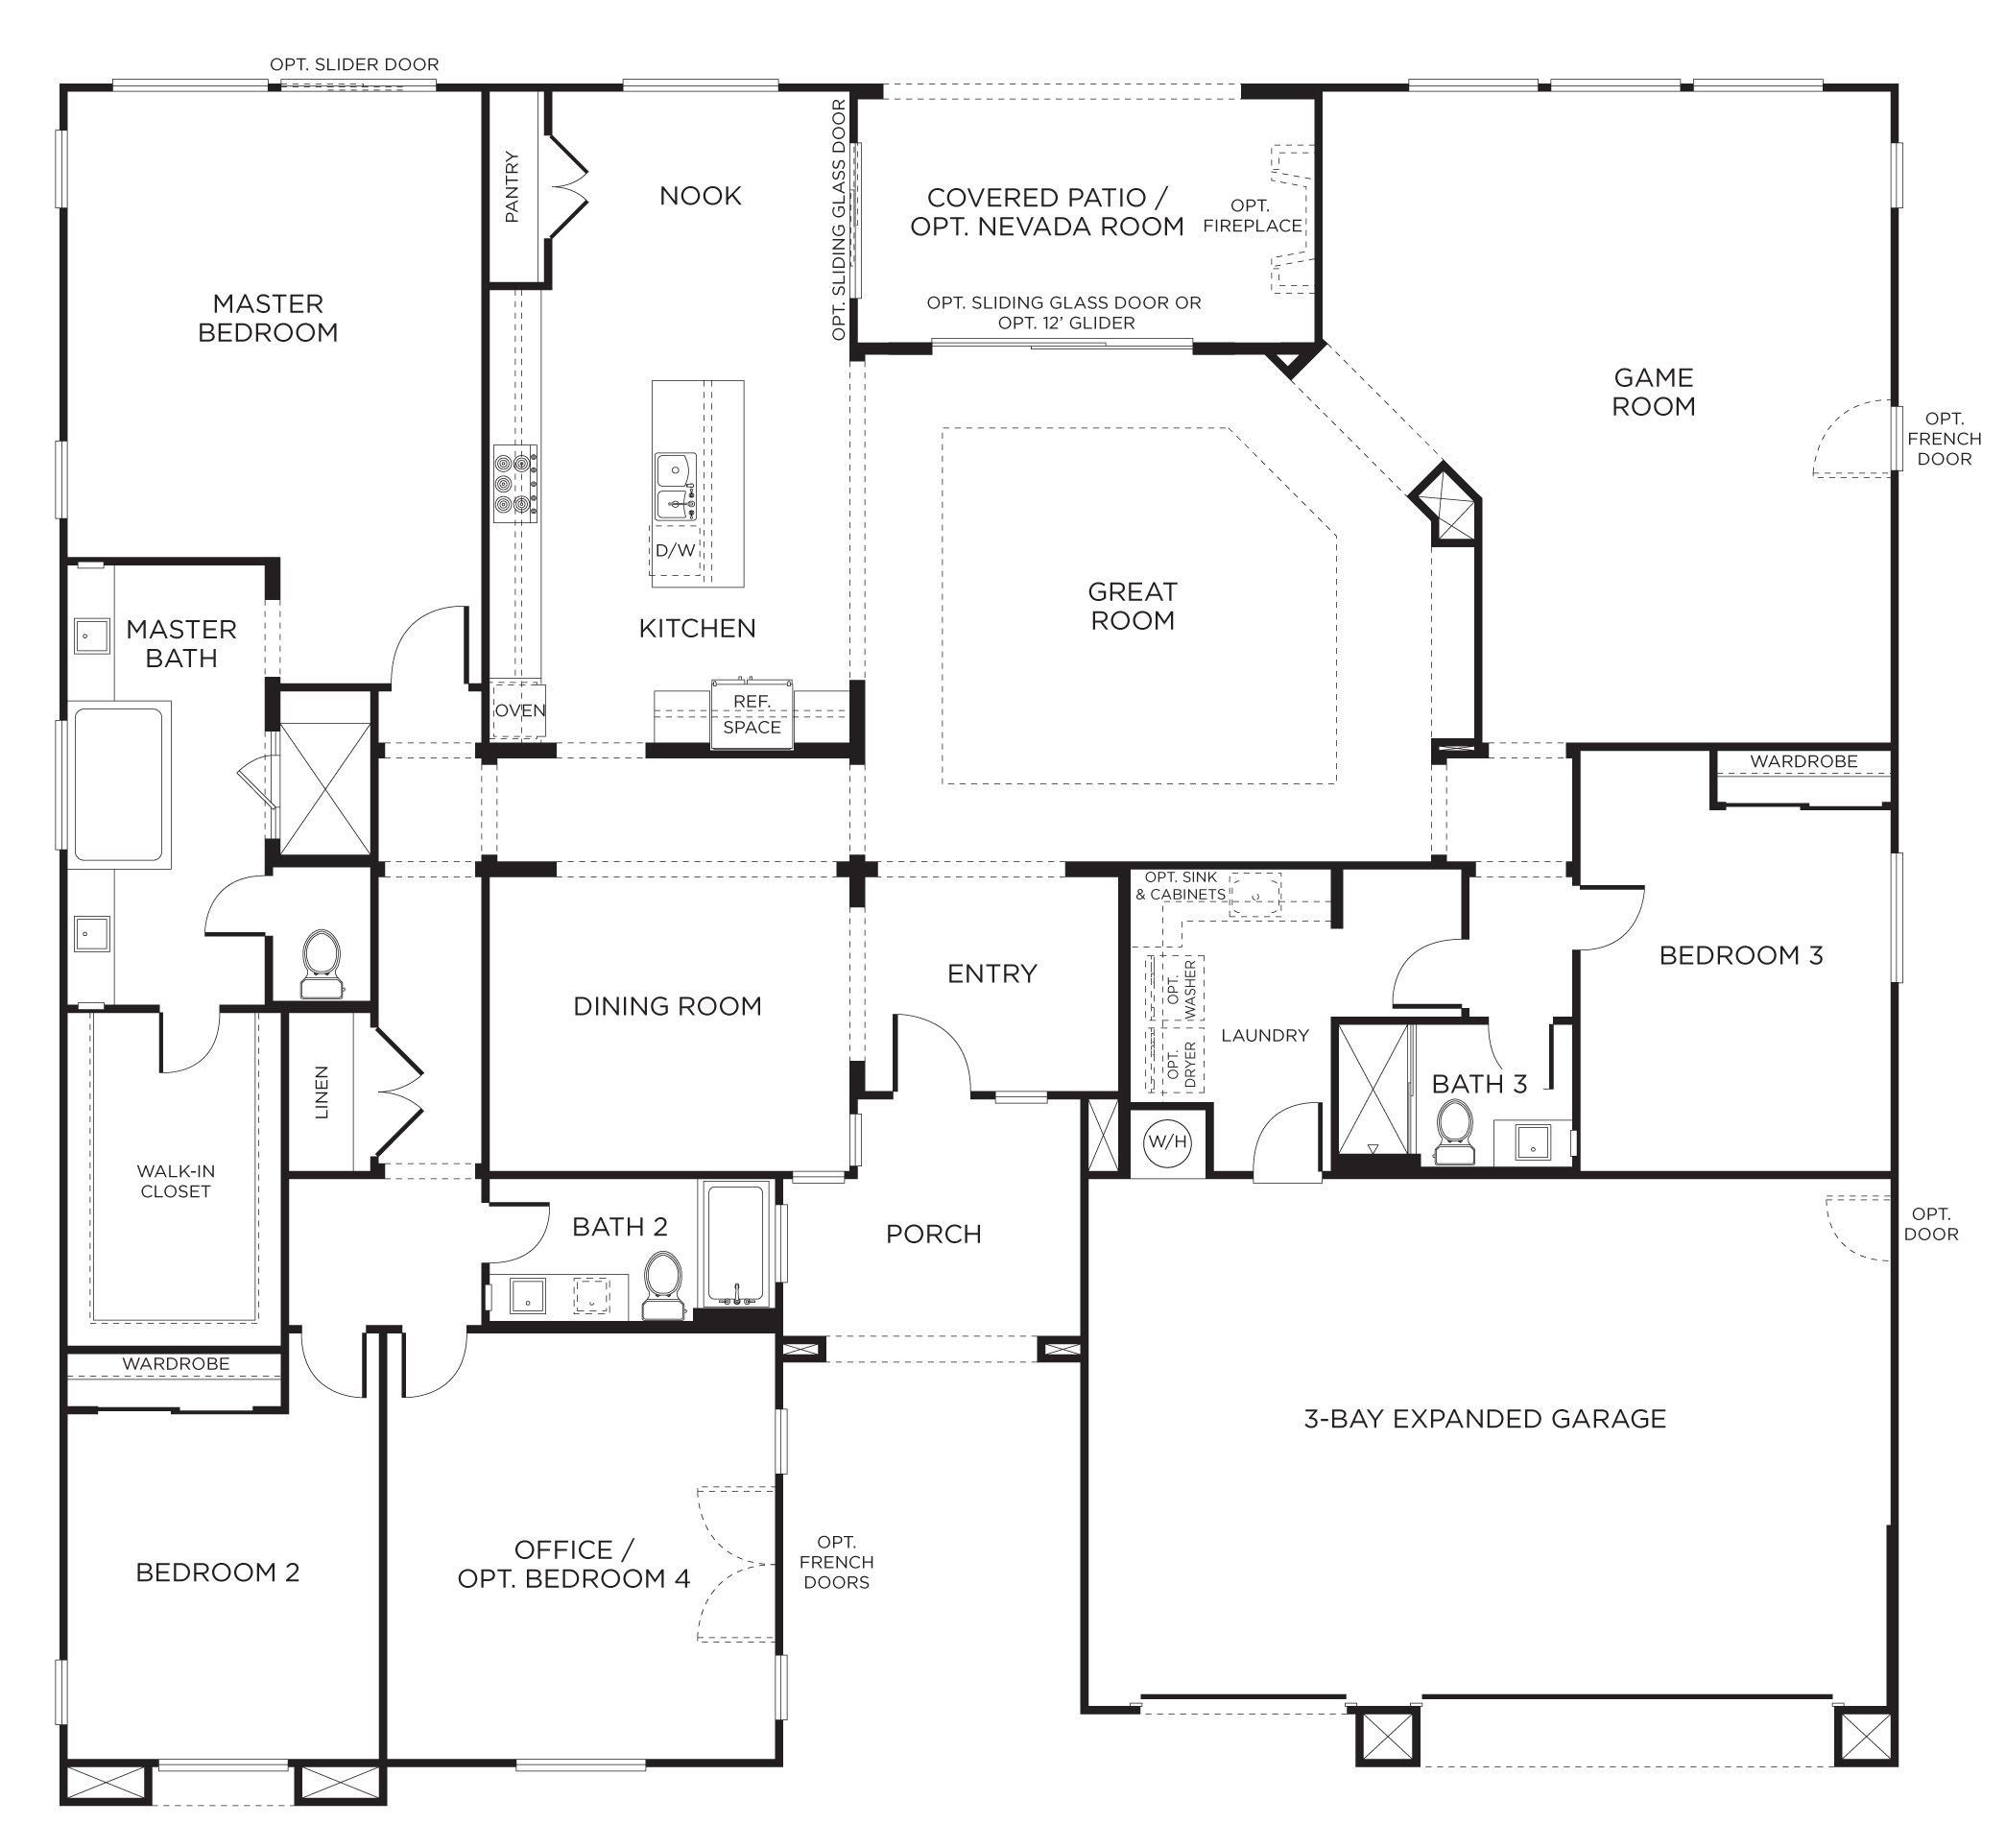 Floorplan 2: 3-4 Bedrooms, 3 Bathrooms, 3400+ Square Feet